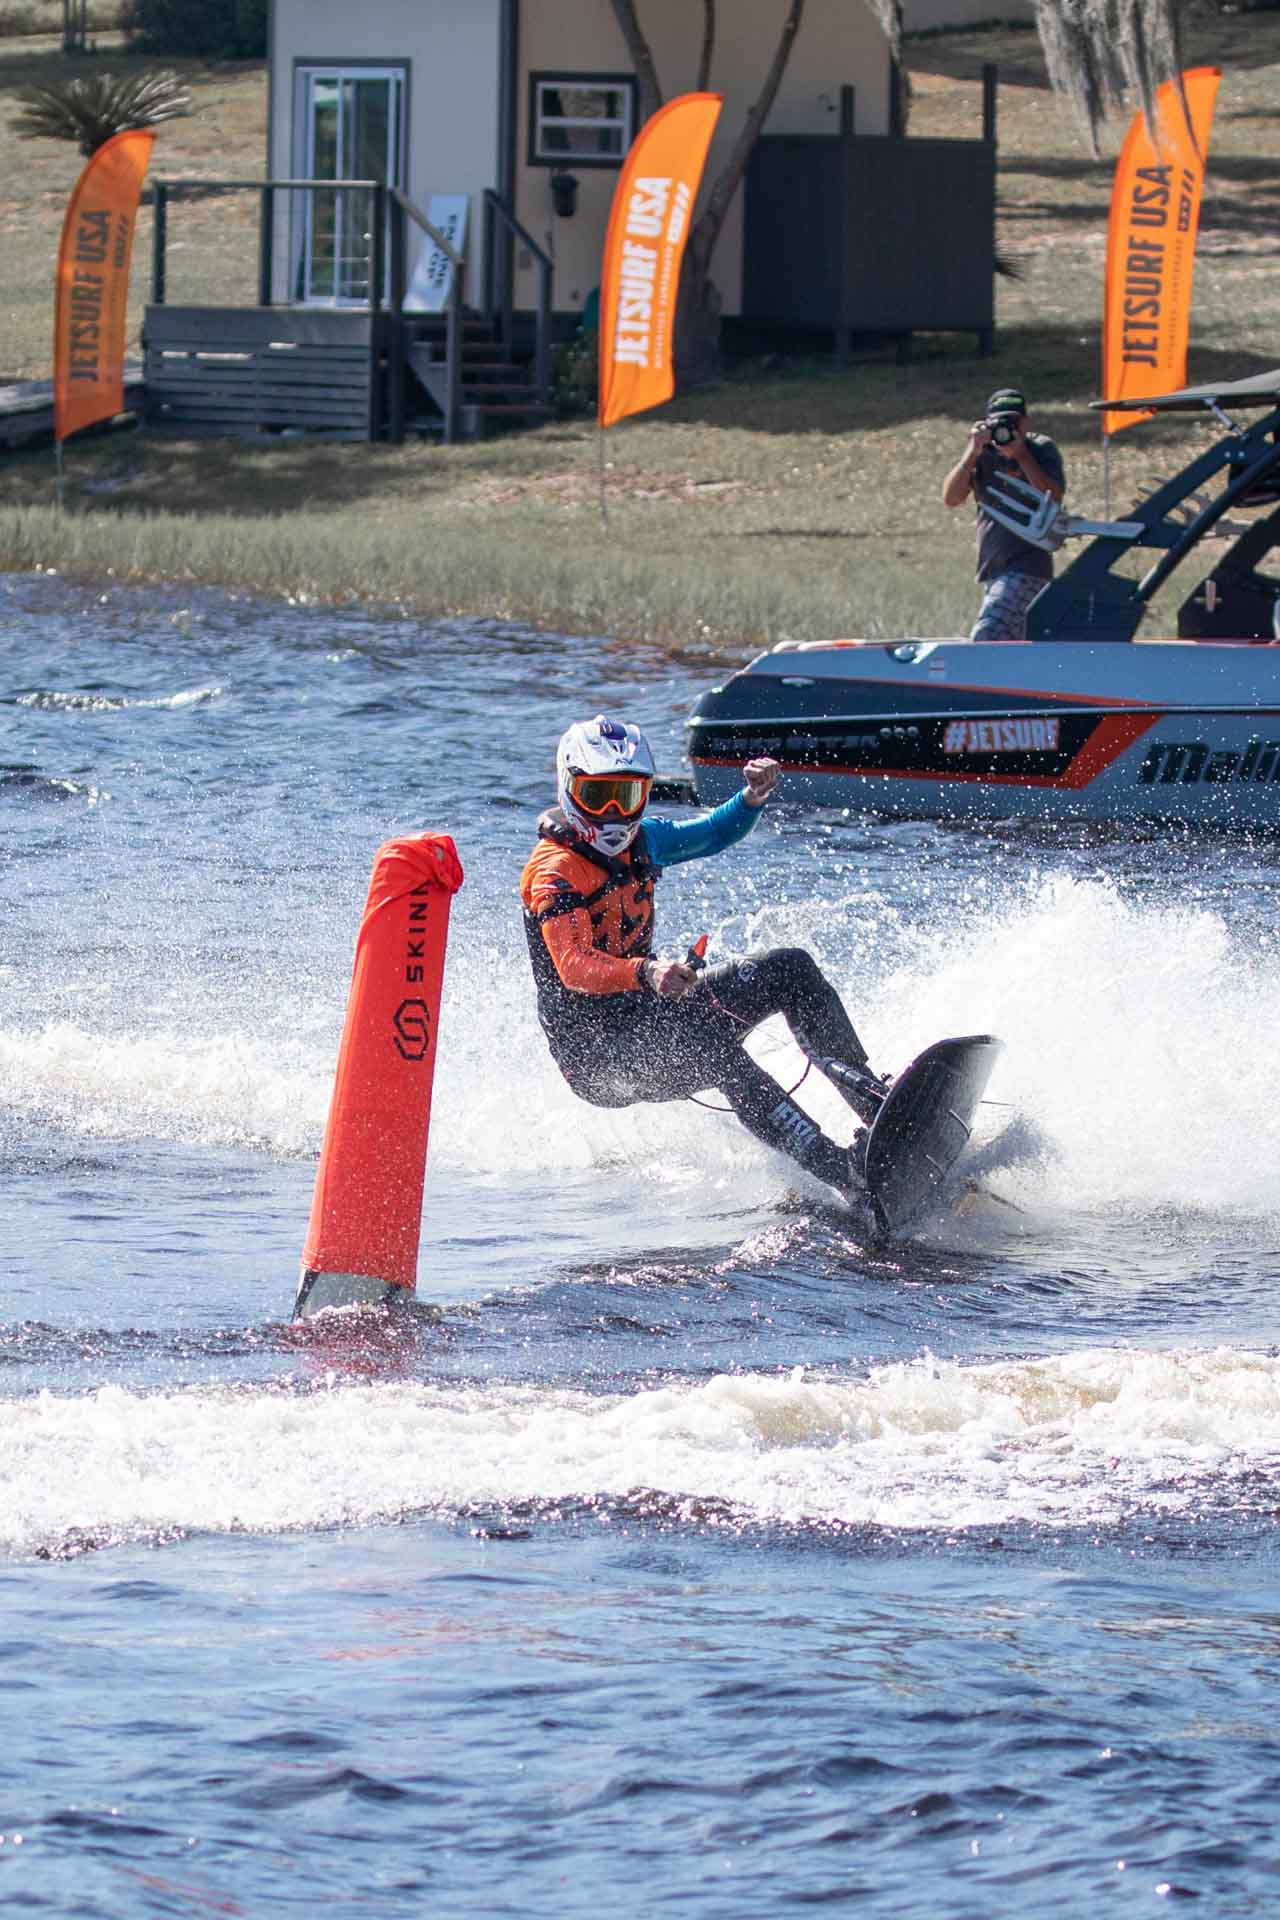 Fire digital content picture of Jetsurf rider